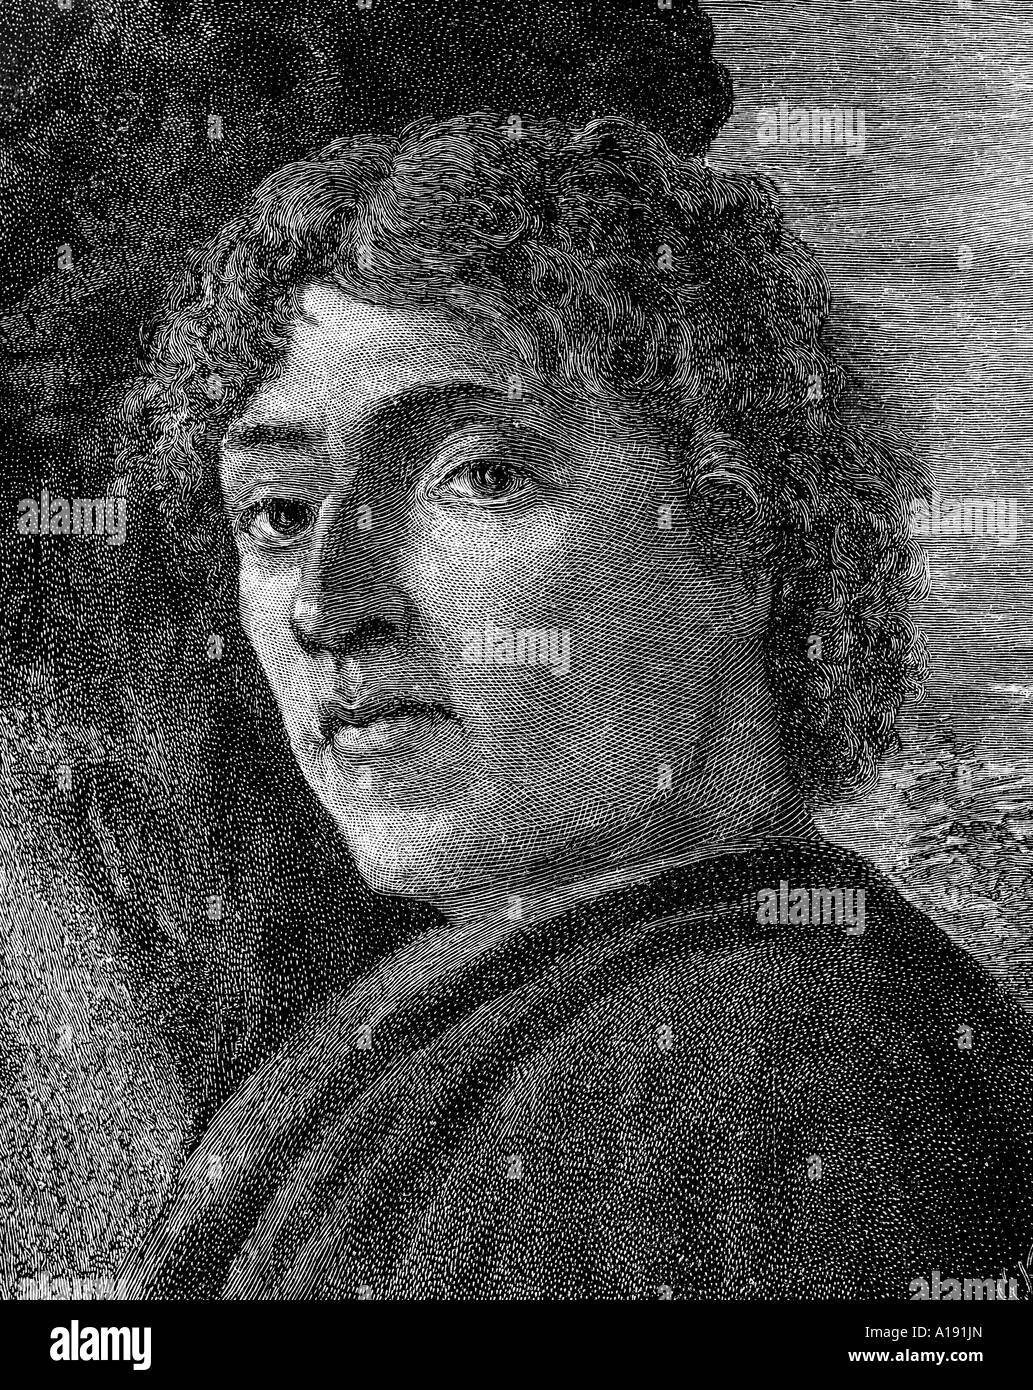 engraving of self portrait by Alessandro Botticelli - Stock Image